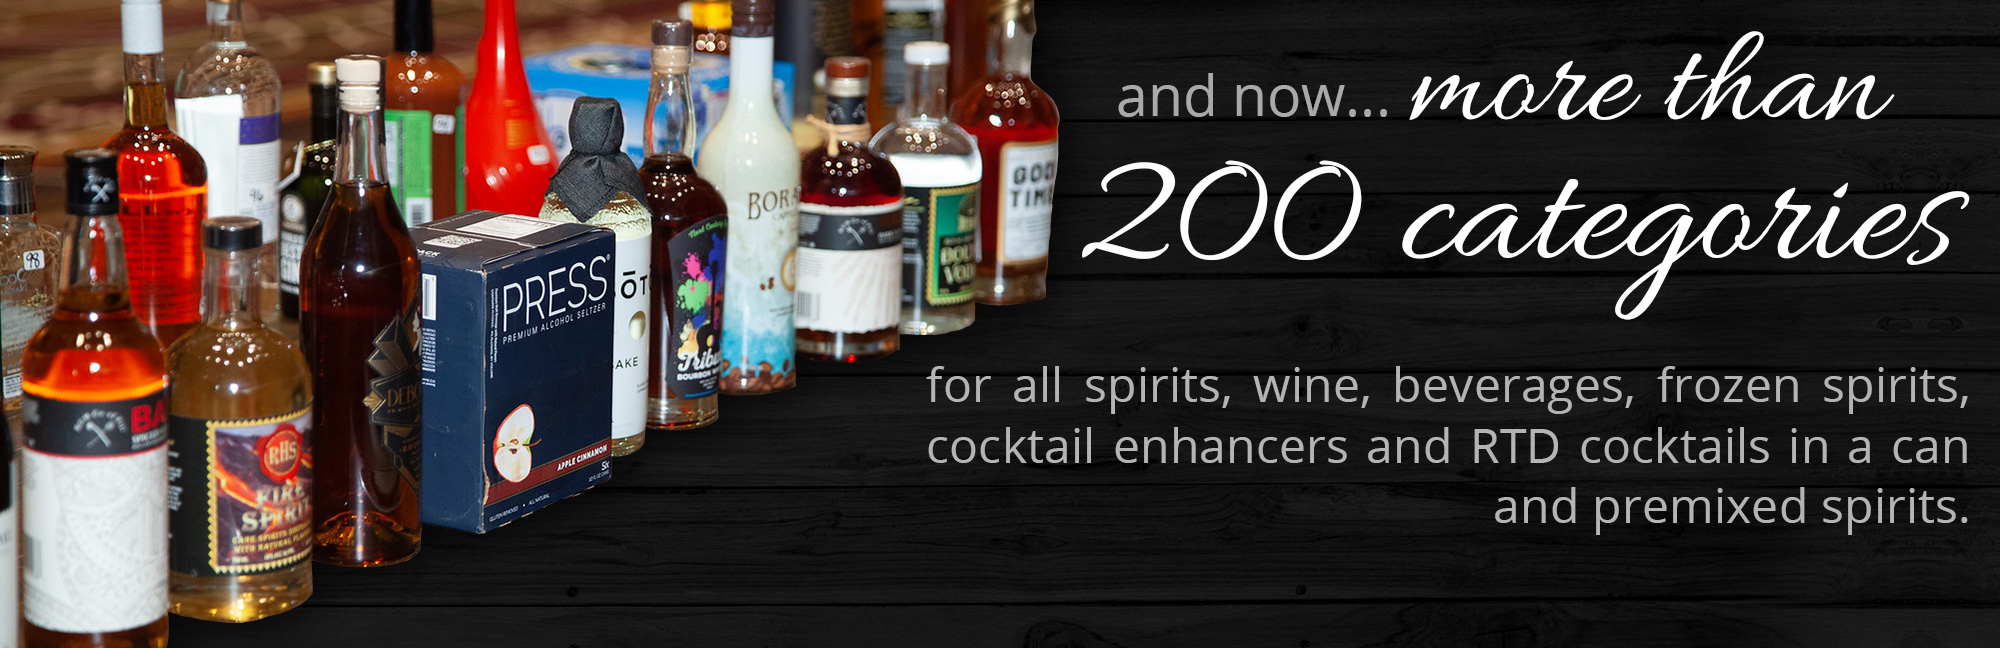 more than 200 categories for all spirits, wine, beverages, frozen spirits, cocktail enhancers and RTD cocktails in a can and premixed spirits.